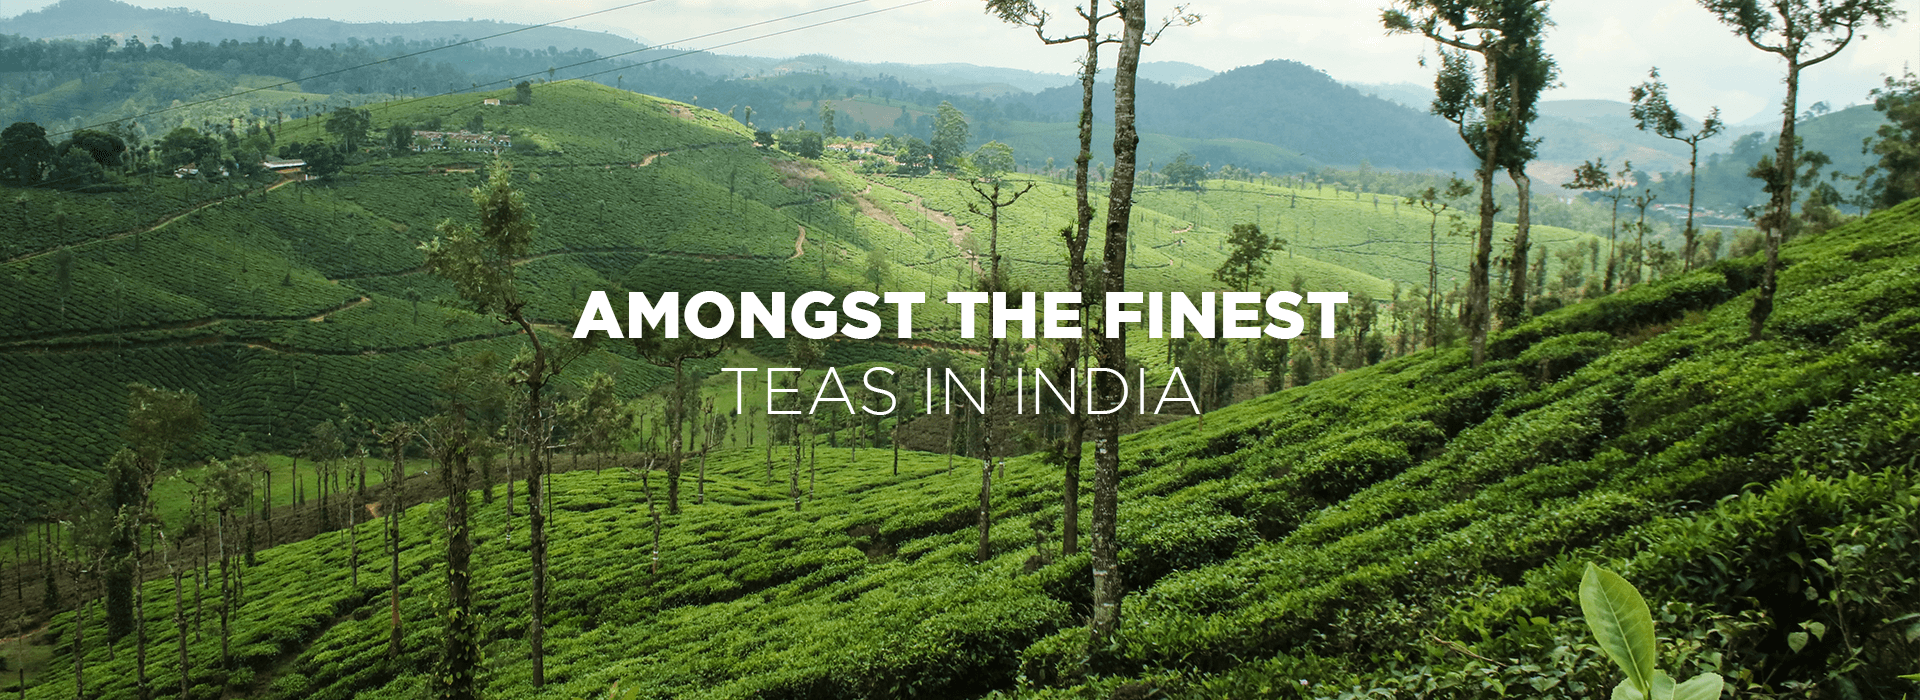 Amongst the finest teas in india